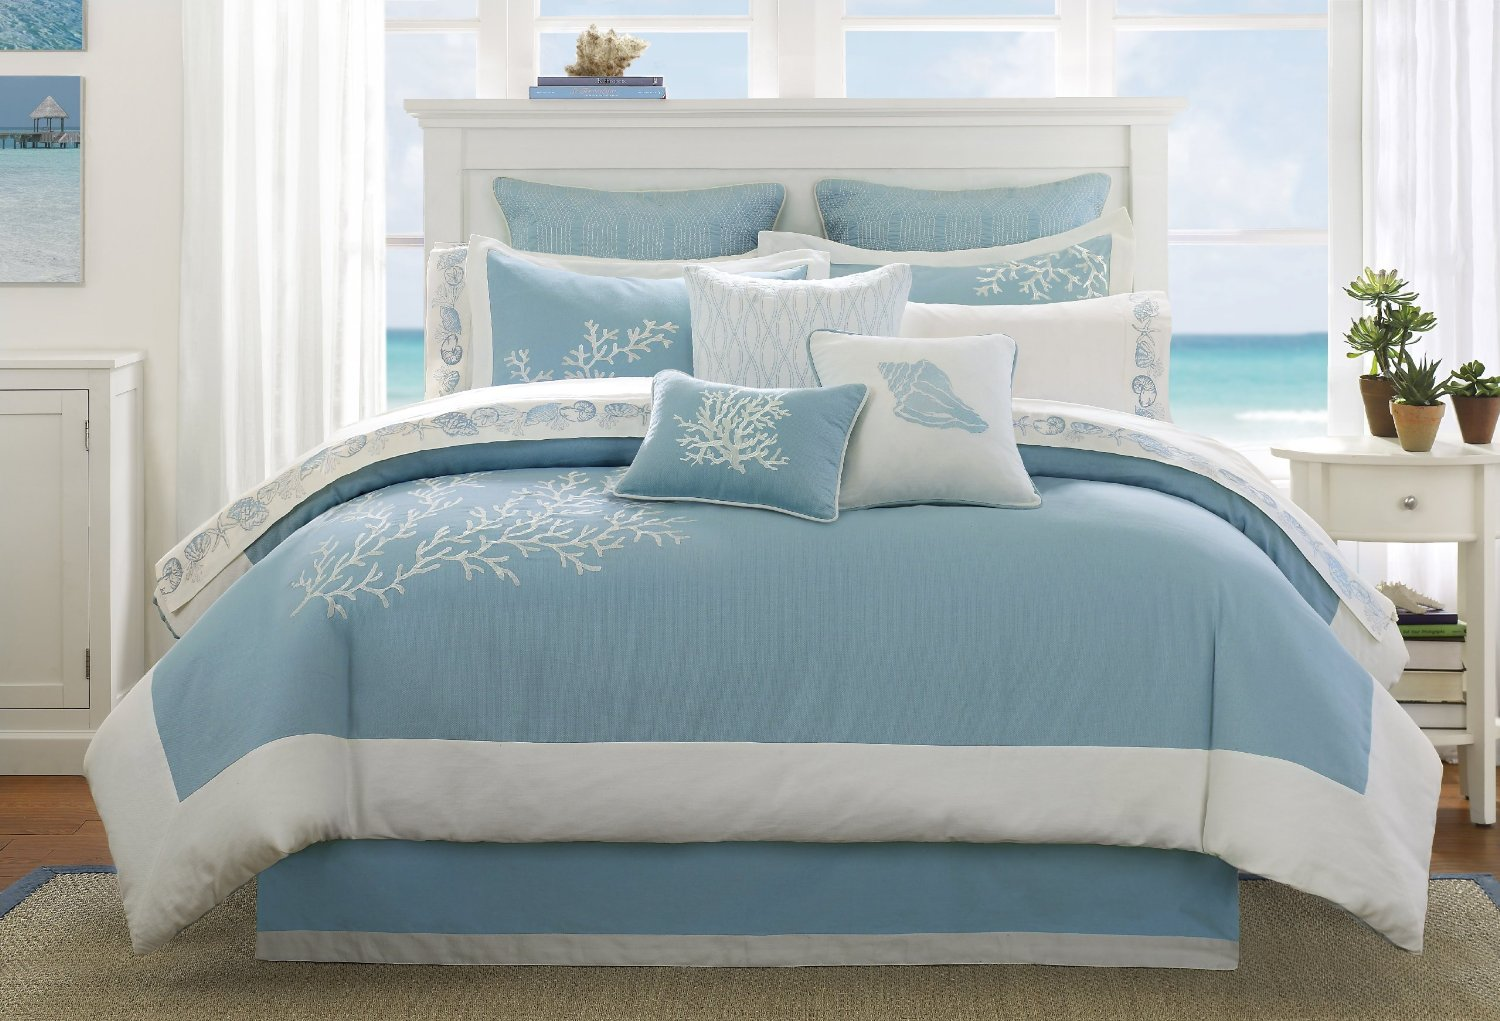 Ideas Beach Themed Bedrooms Aqua And White Beddding Sets Funk This House